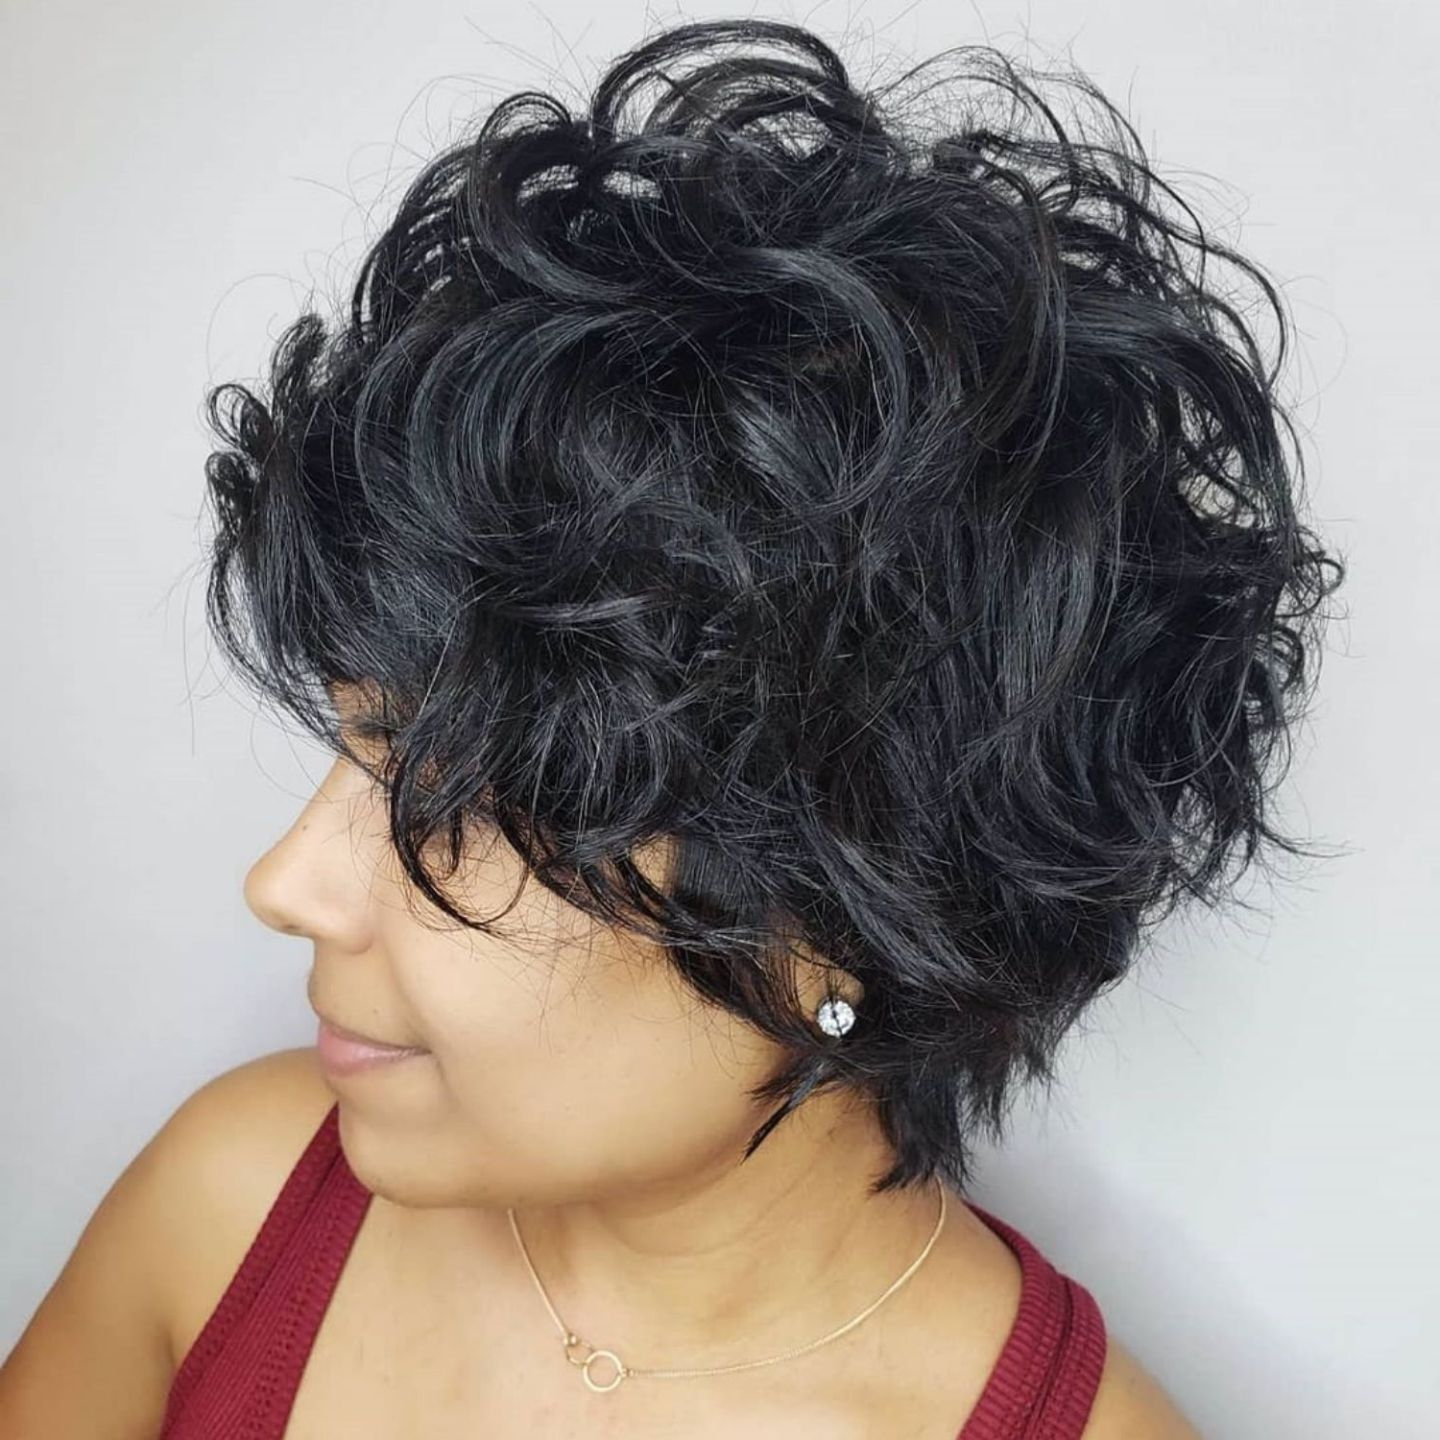 Short Blue Black Tousled Curly Hairstyle (View 12 of 20)